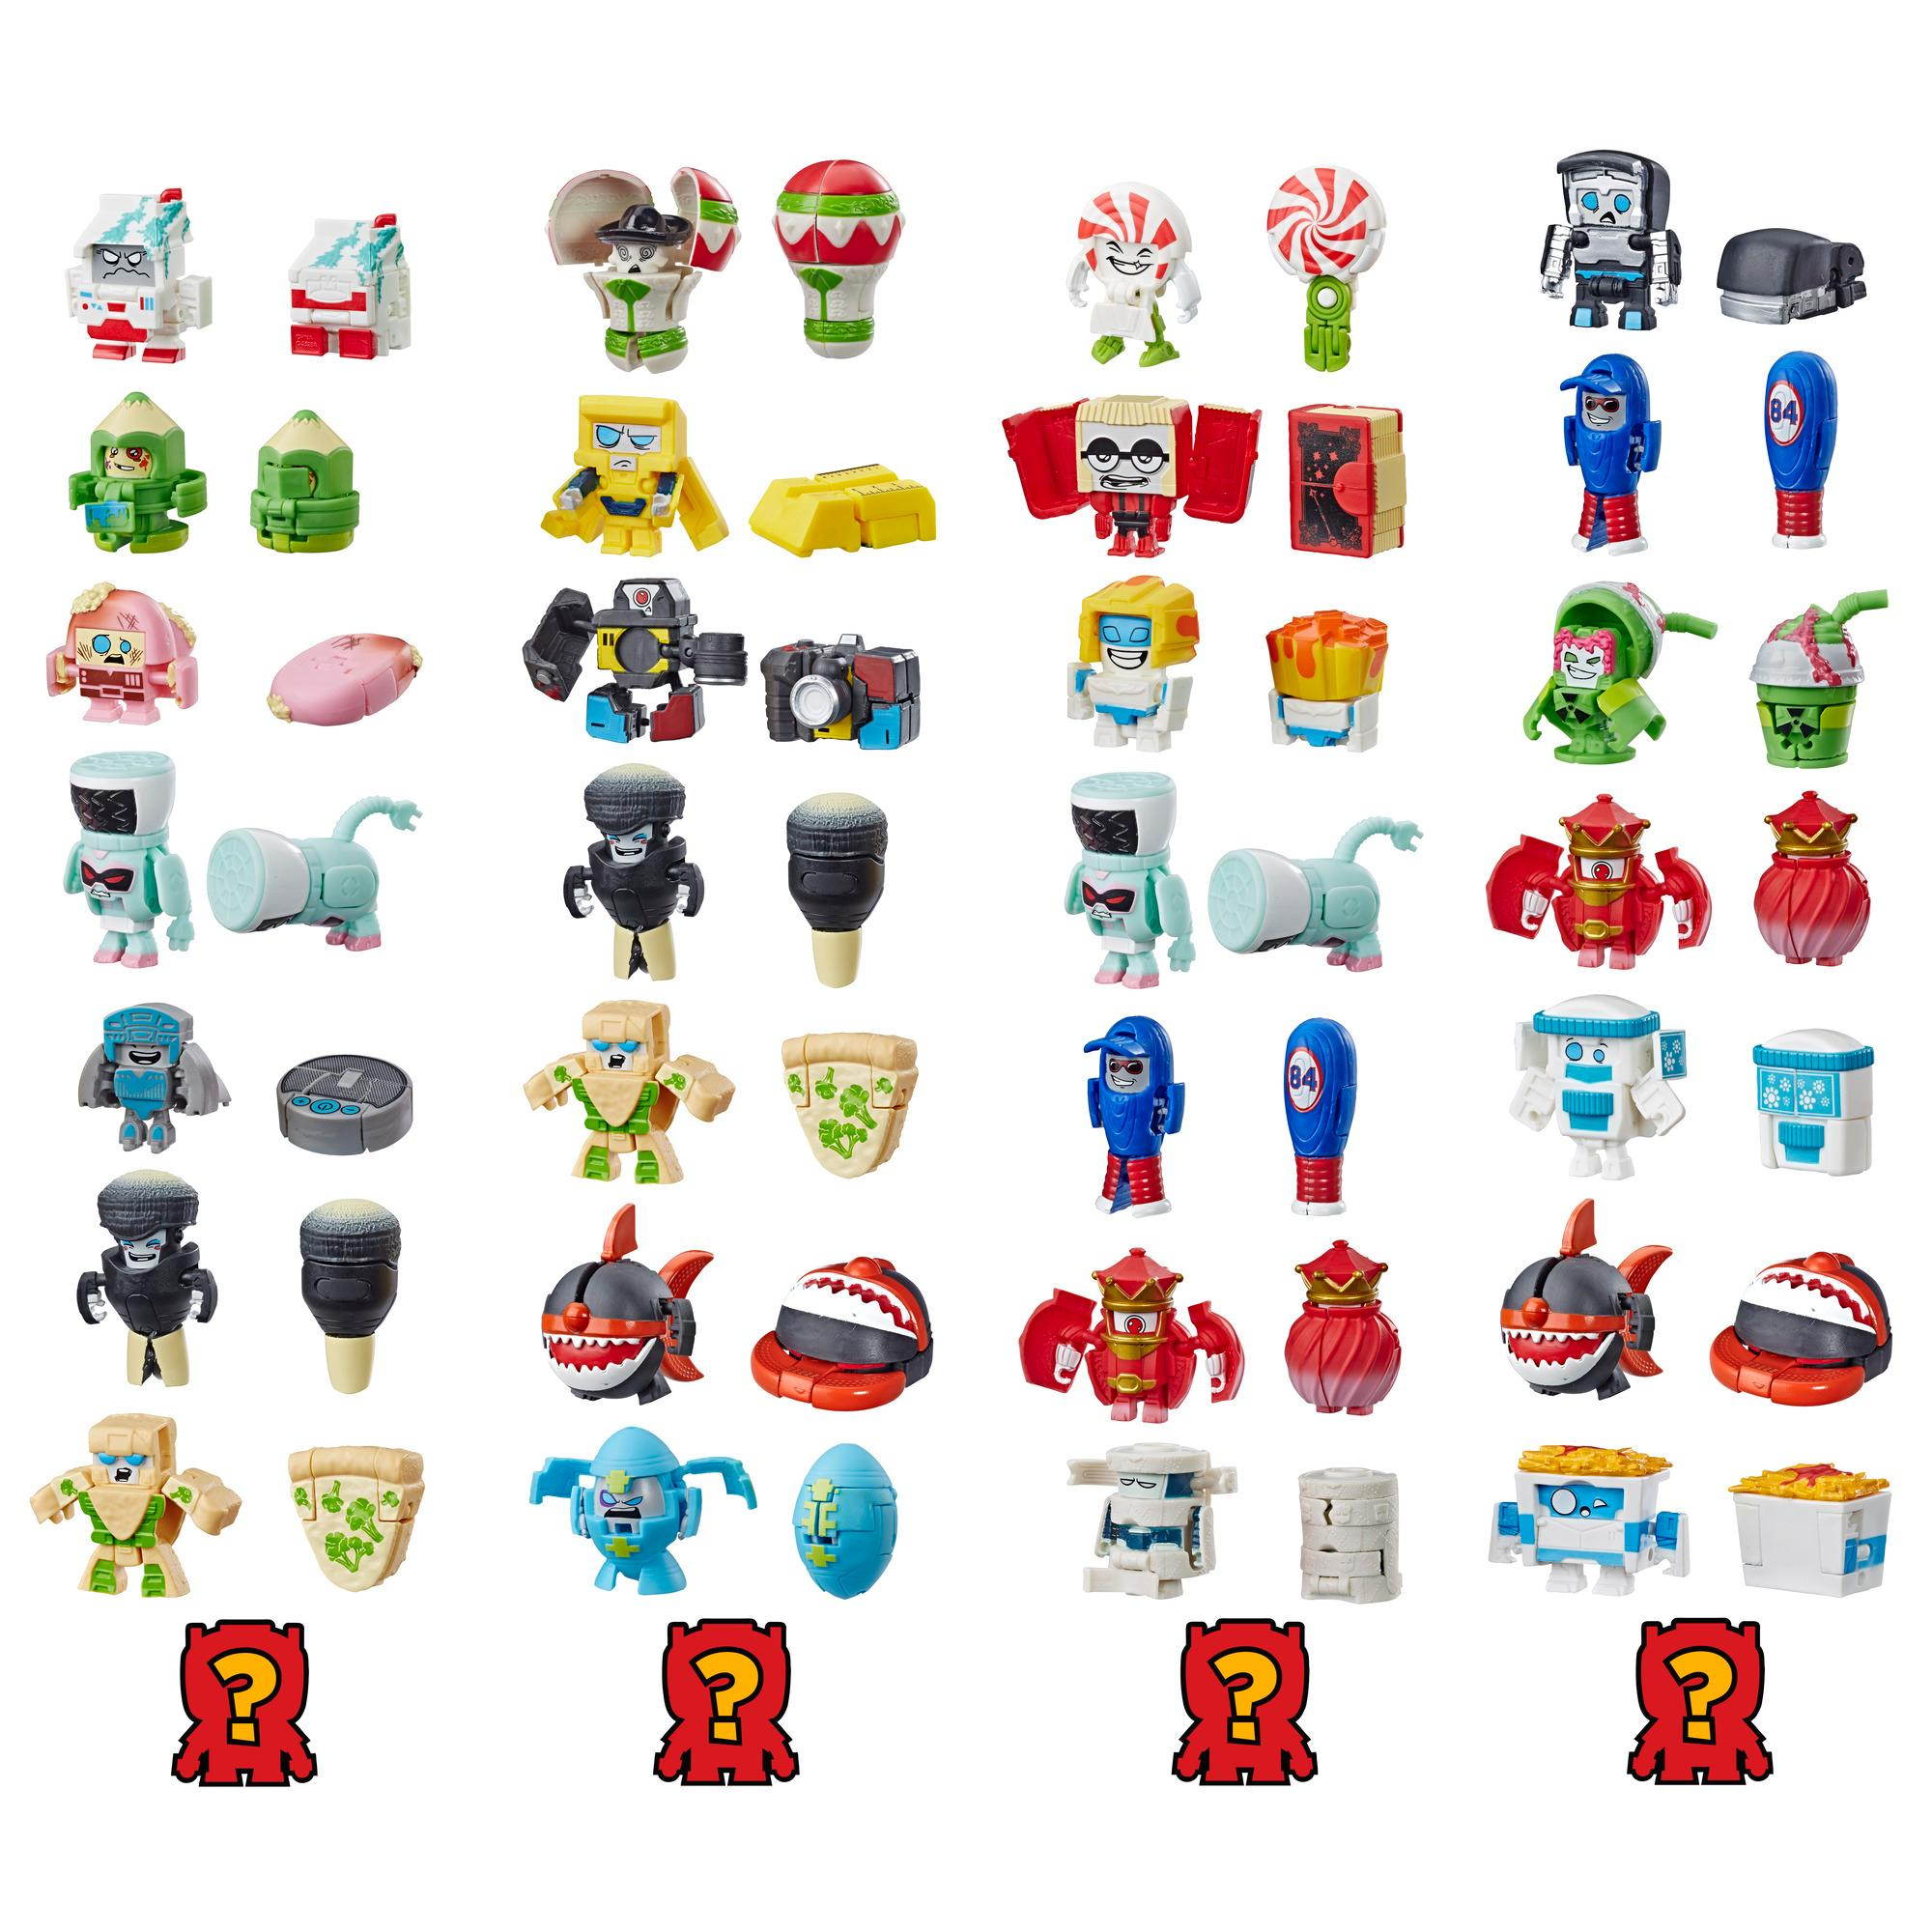 Transformers Toys BotBots Series 2 Swag Stylers 8-Pack – Mystery 2-In-1 Collectible Figures! Kids Ages 5 and Up (Styles and Colors May Vary) by Hasbro